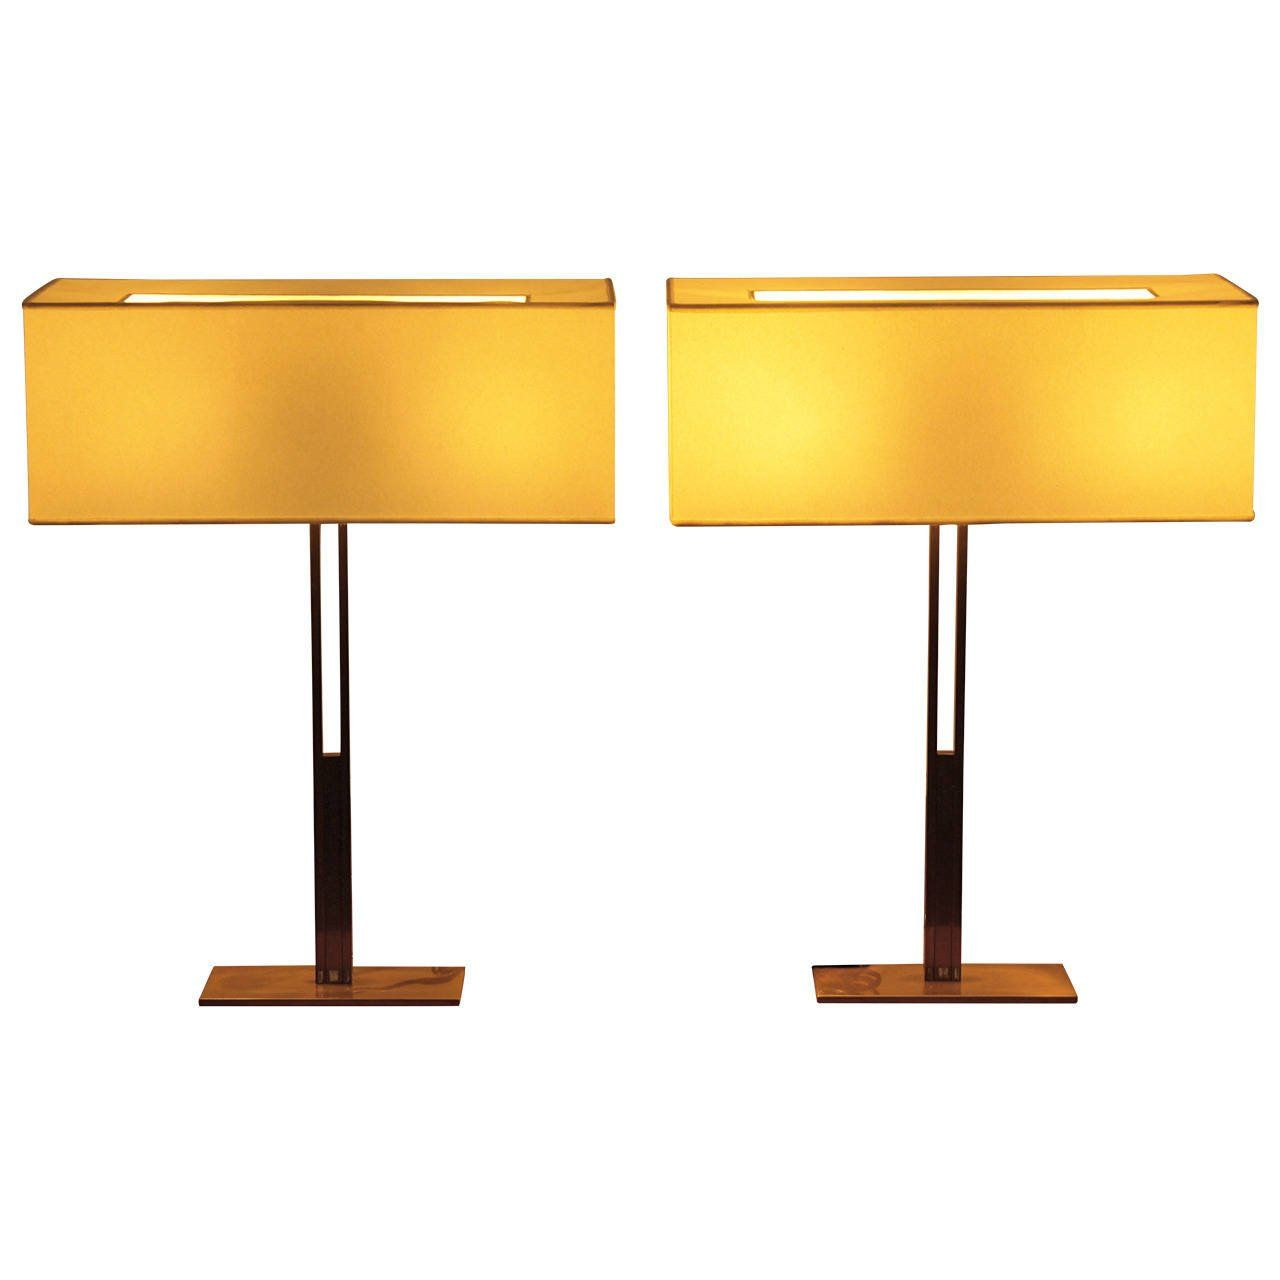 Pair Of Christian Liaigre Canisse Table Lamps For Holly Hunt